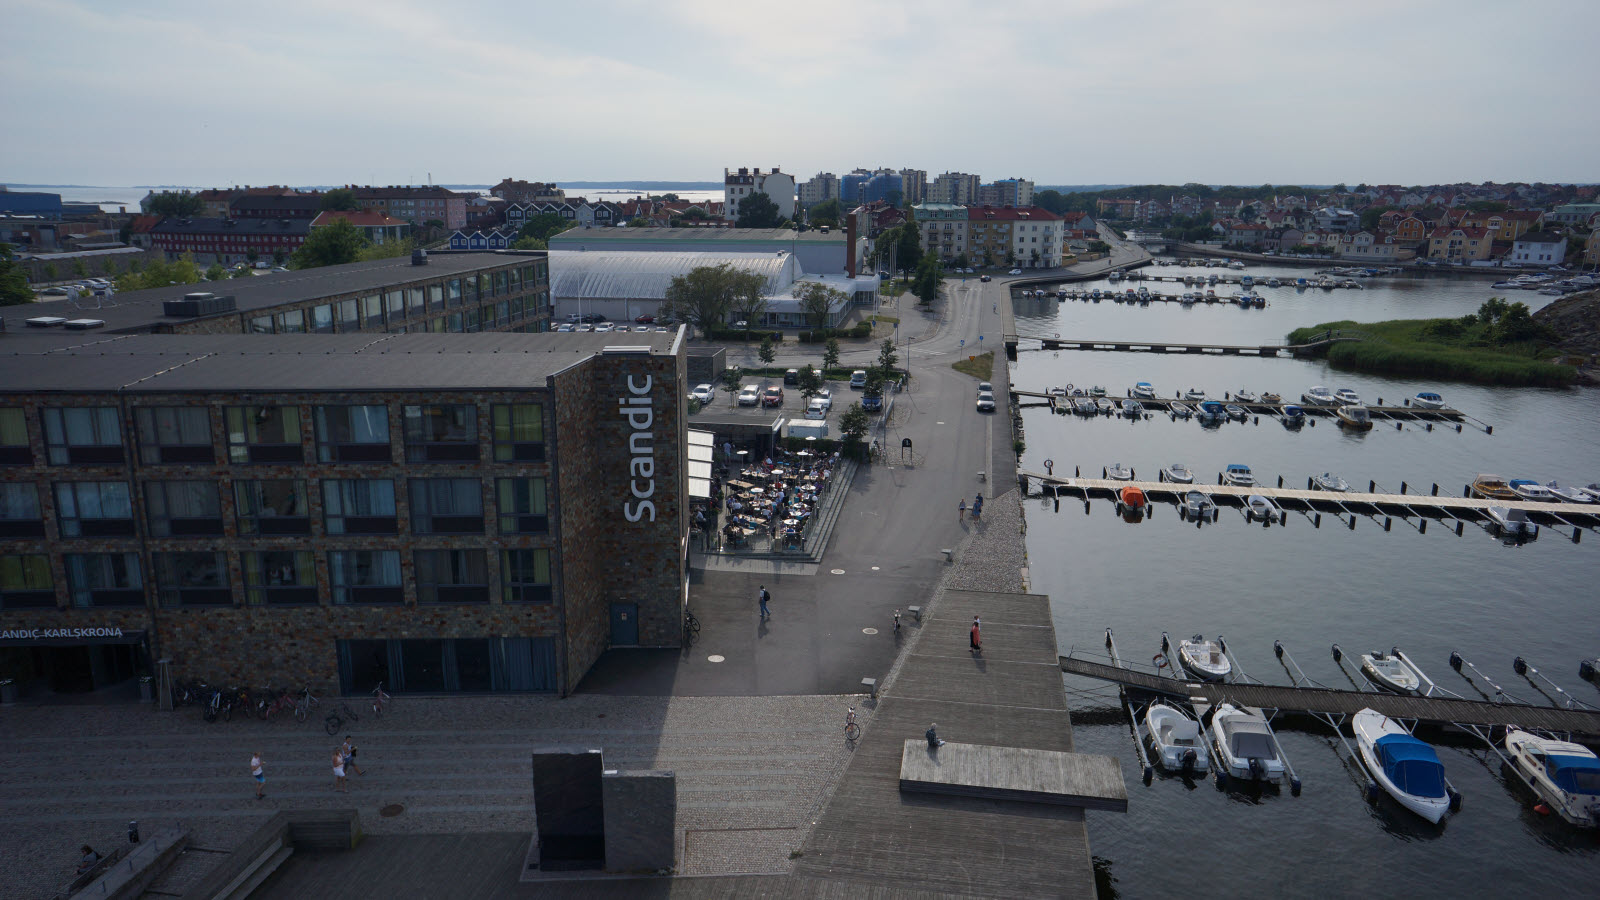 View over Karlskrona